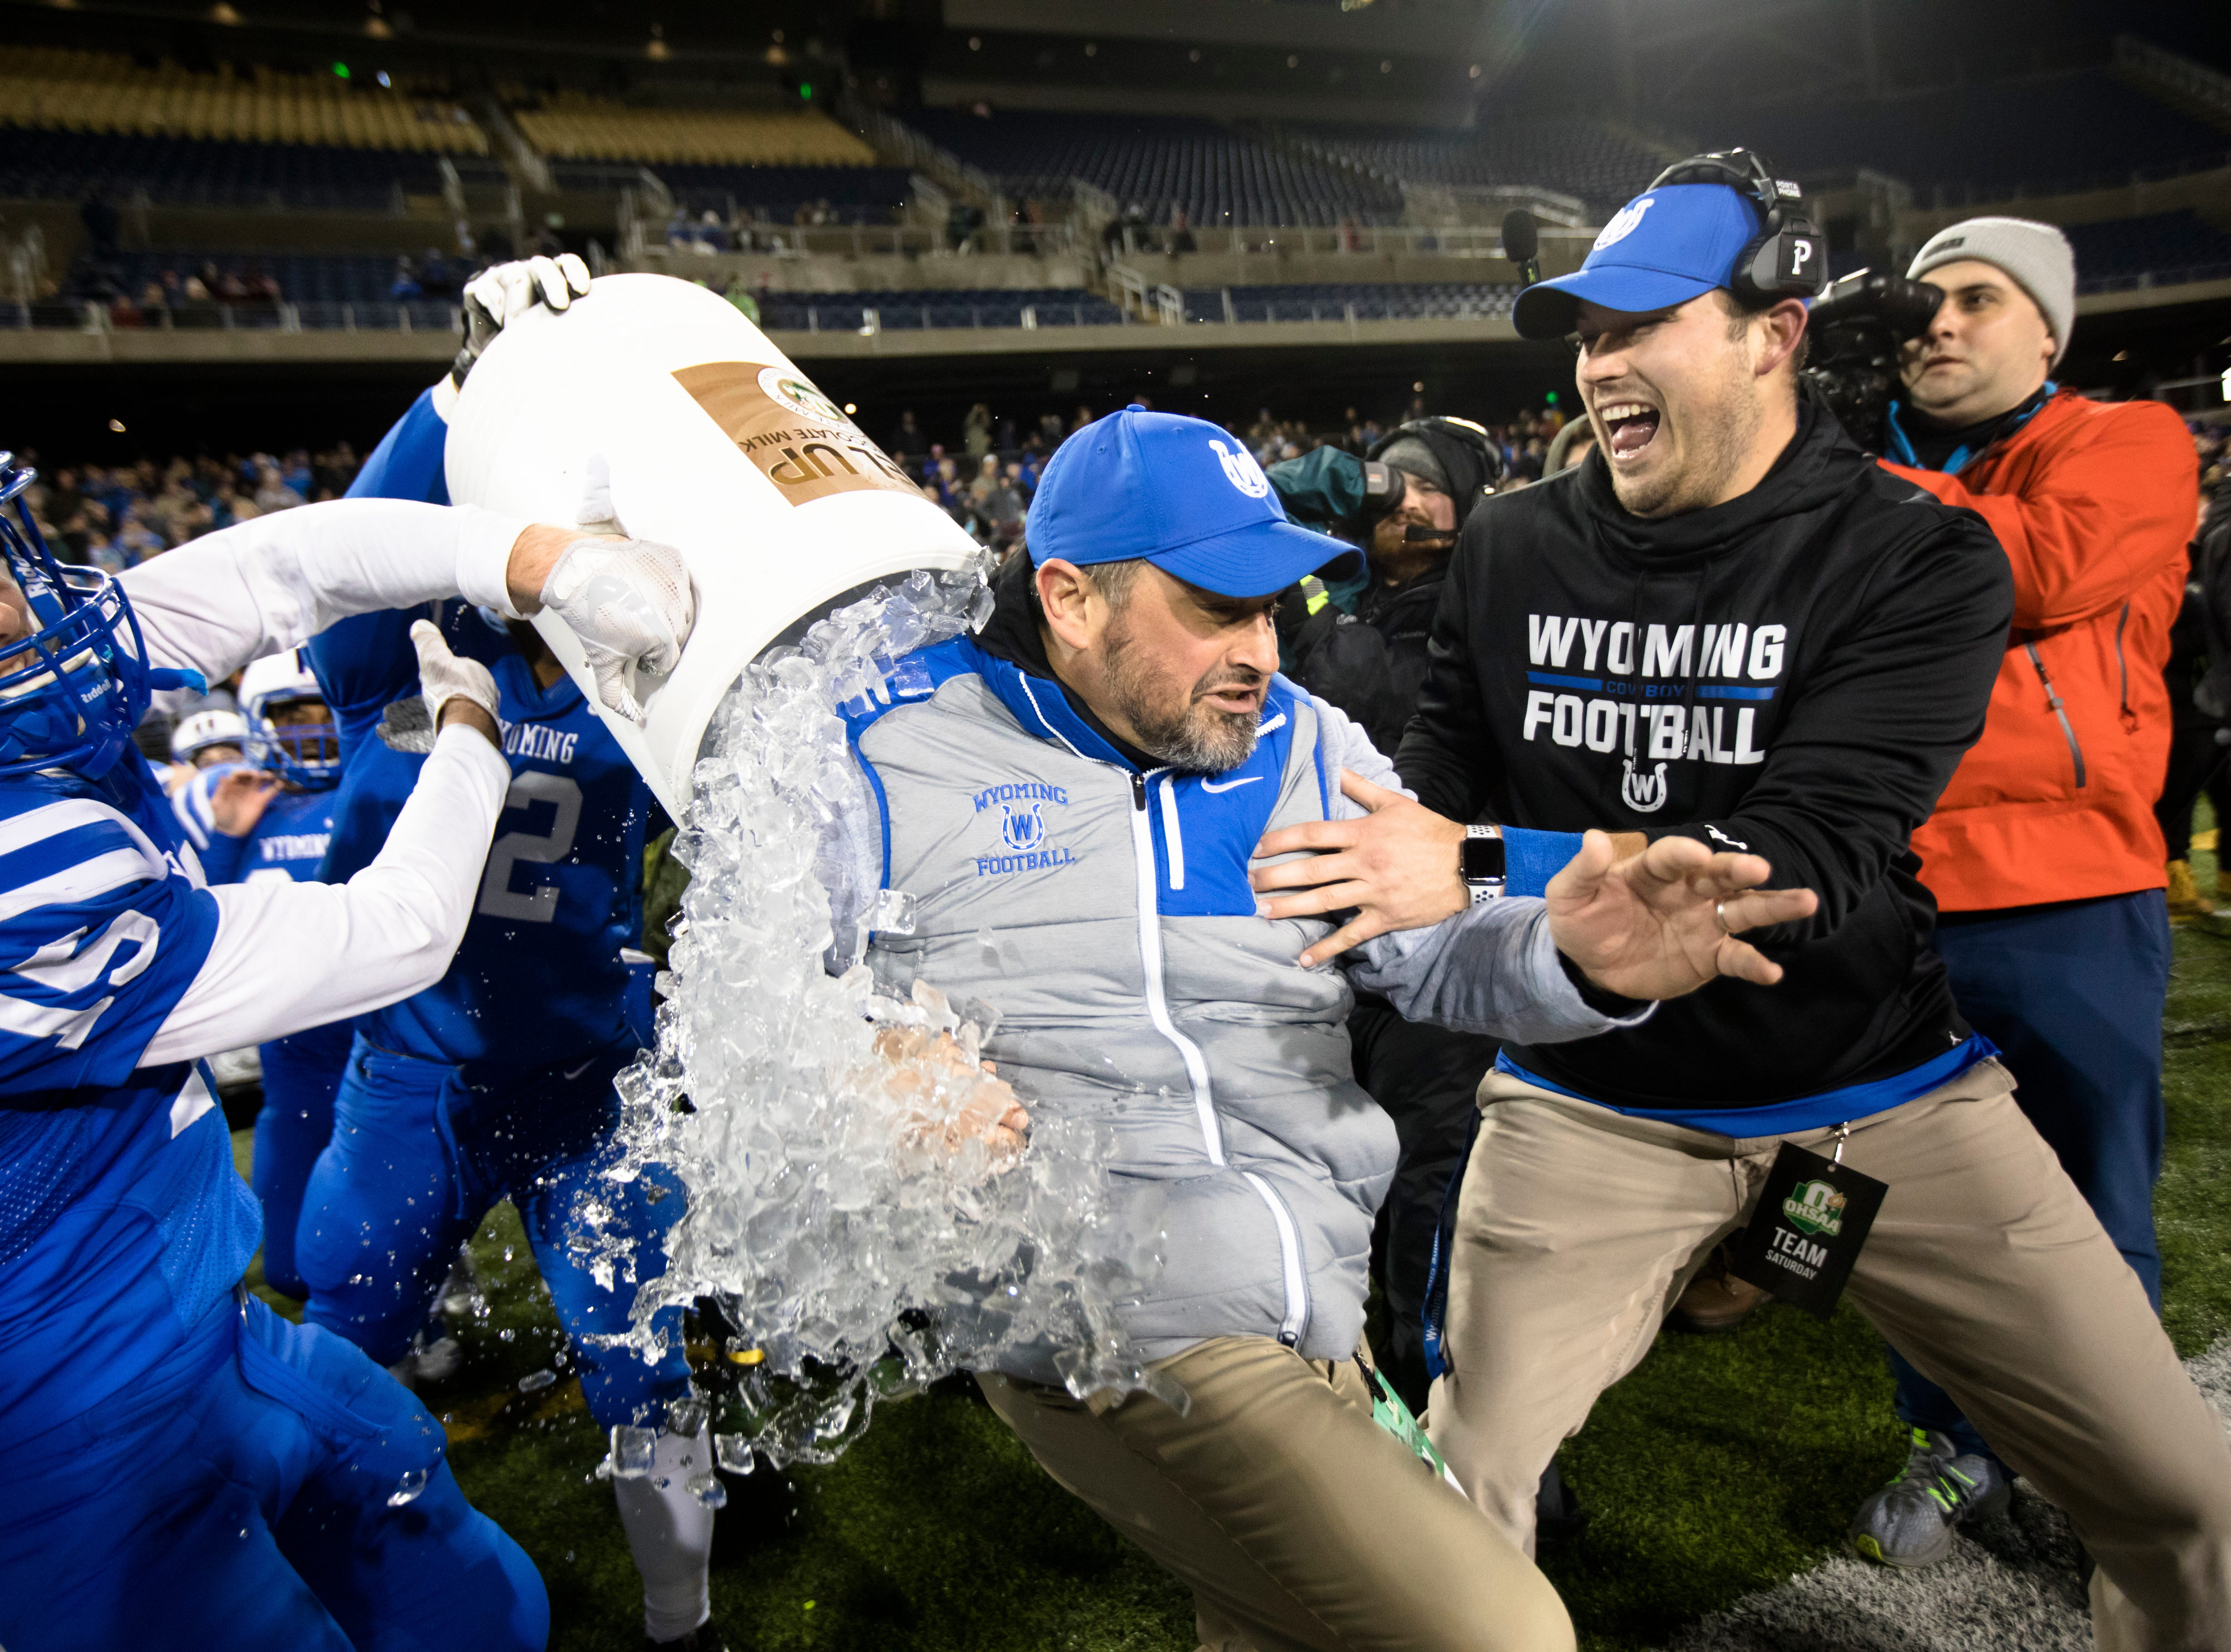 Wyoming's Perry McMichen (15) dunks Wyoming head coach Aaron Hancock as they win the OHSAA Division IV State Championship football game between Wyoming and Girard on Saturday, Dec. 1, 2018, at Tom Benson Stadium in Canton. Wyoming defeated Girard 42-14.